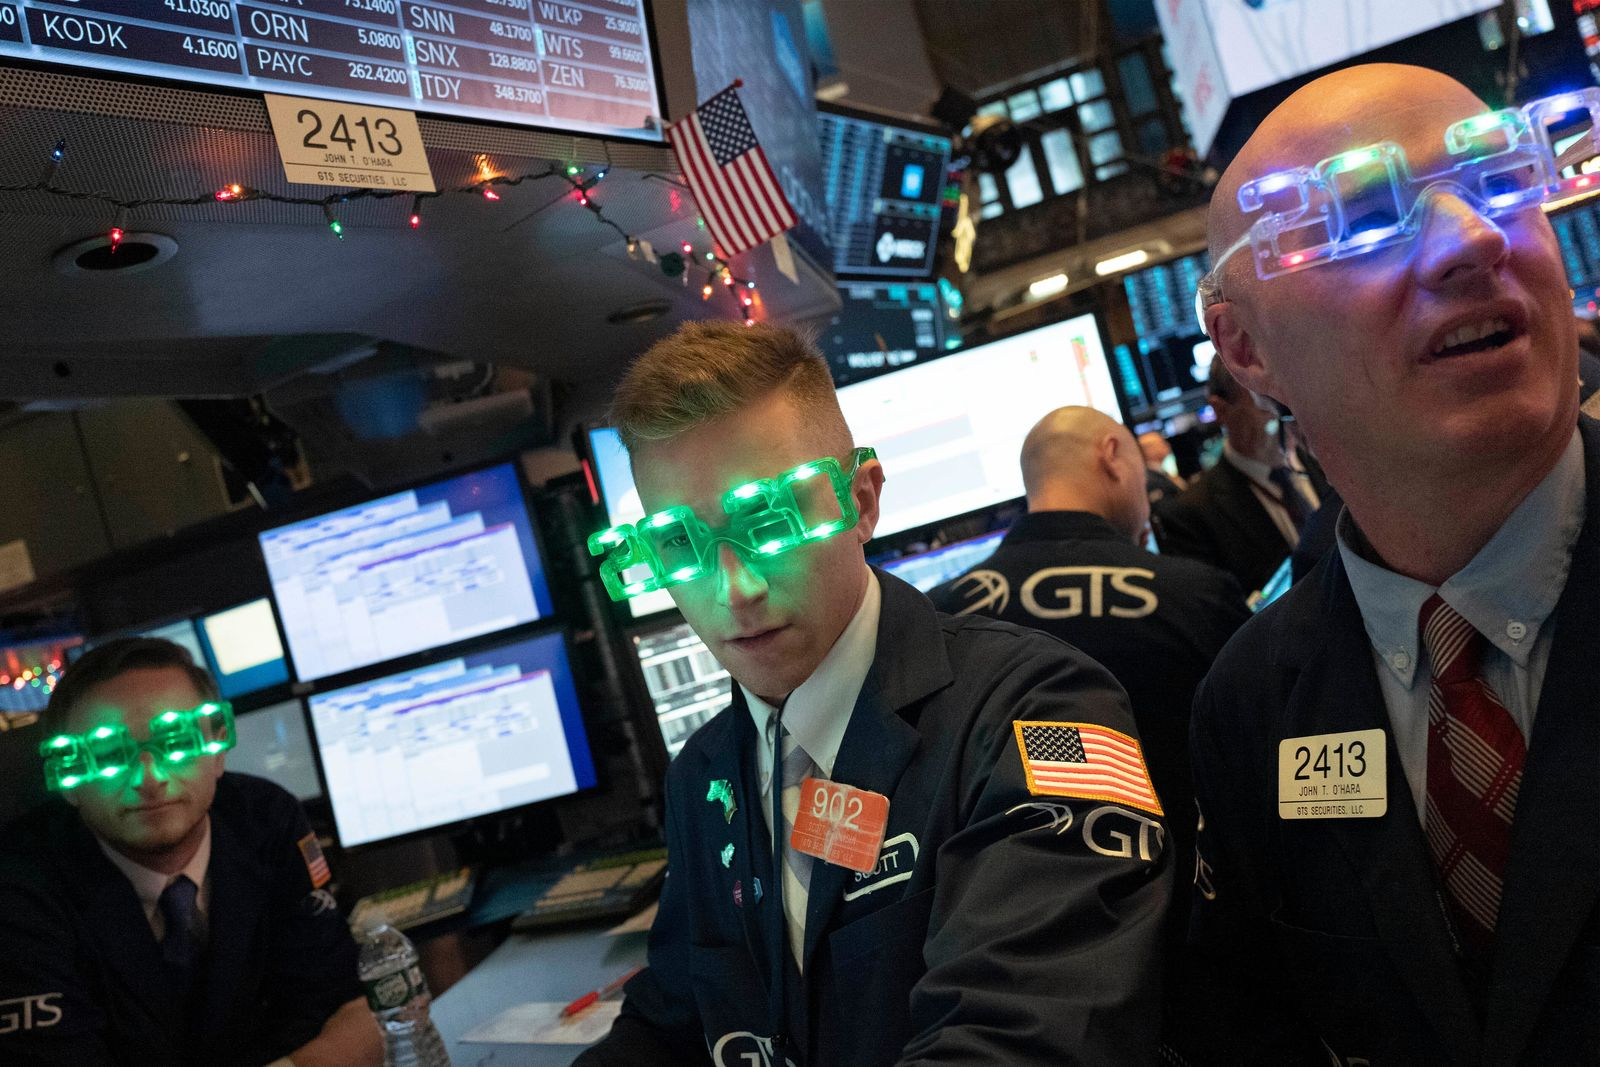 Stock traders wear New Year's 2020 party glasses at the New York Stock Exchange, Tuesday, Dec. 31, 2019. Stocks slipped globally in quiet New Year's Eve trading Tuesday with many markets closed. Wall Street could close 2019 with back-to-back daily losses in a year that the U.S. posted the largest market gains since 2013. (AP Photo/Mark Lennihan)